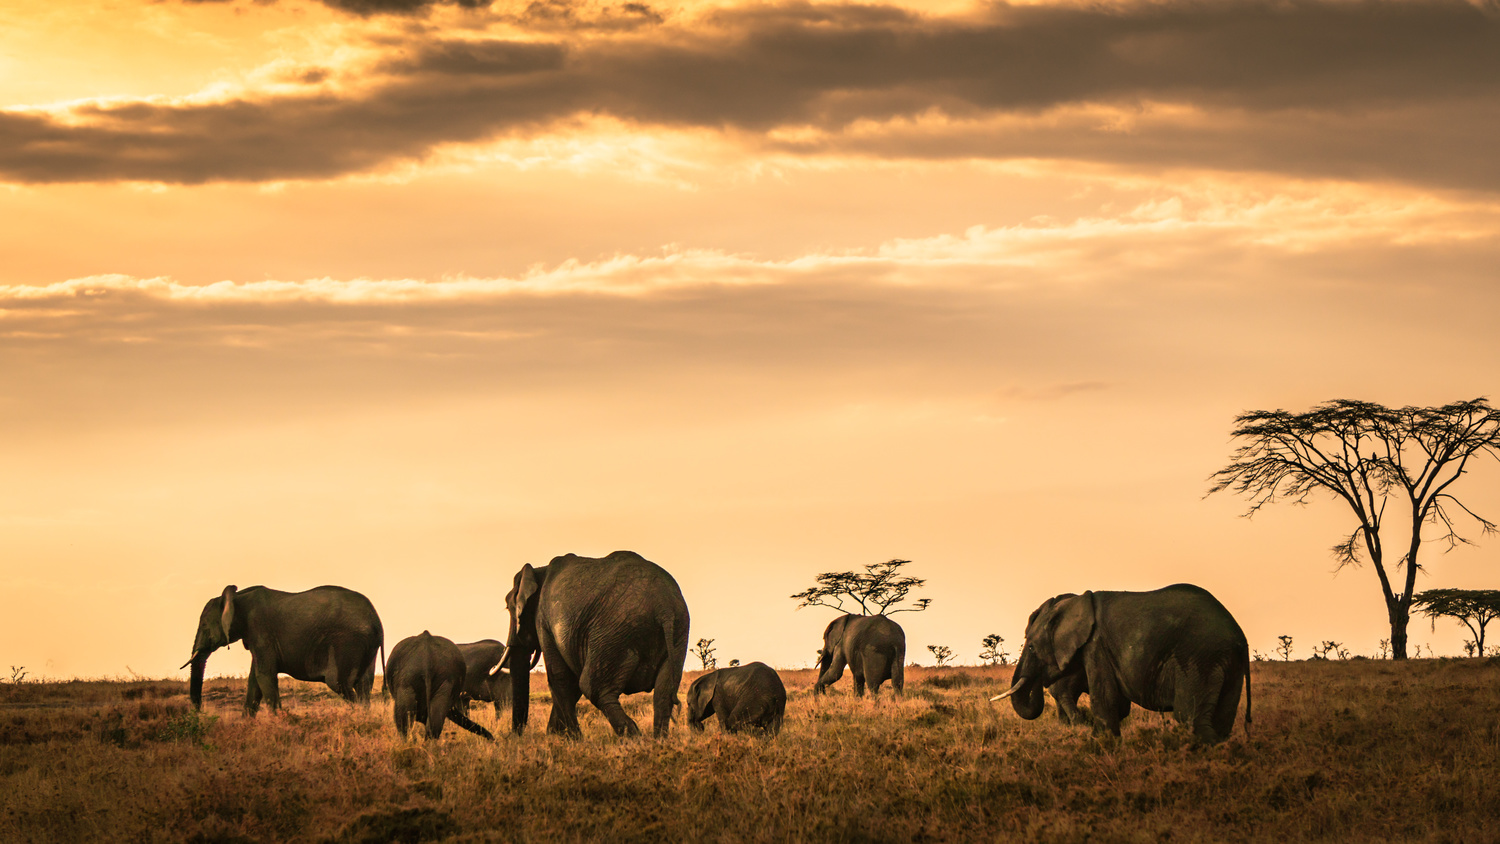 Ellies at sunset. by Hanif H